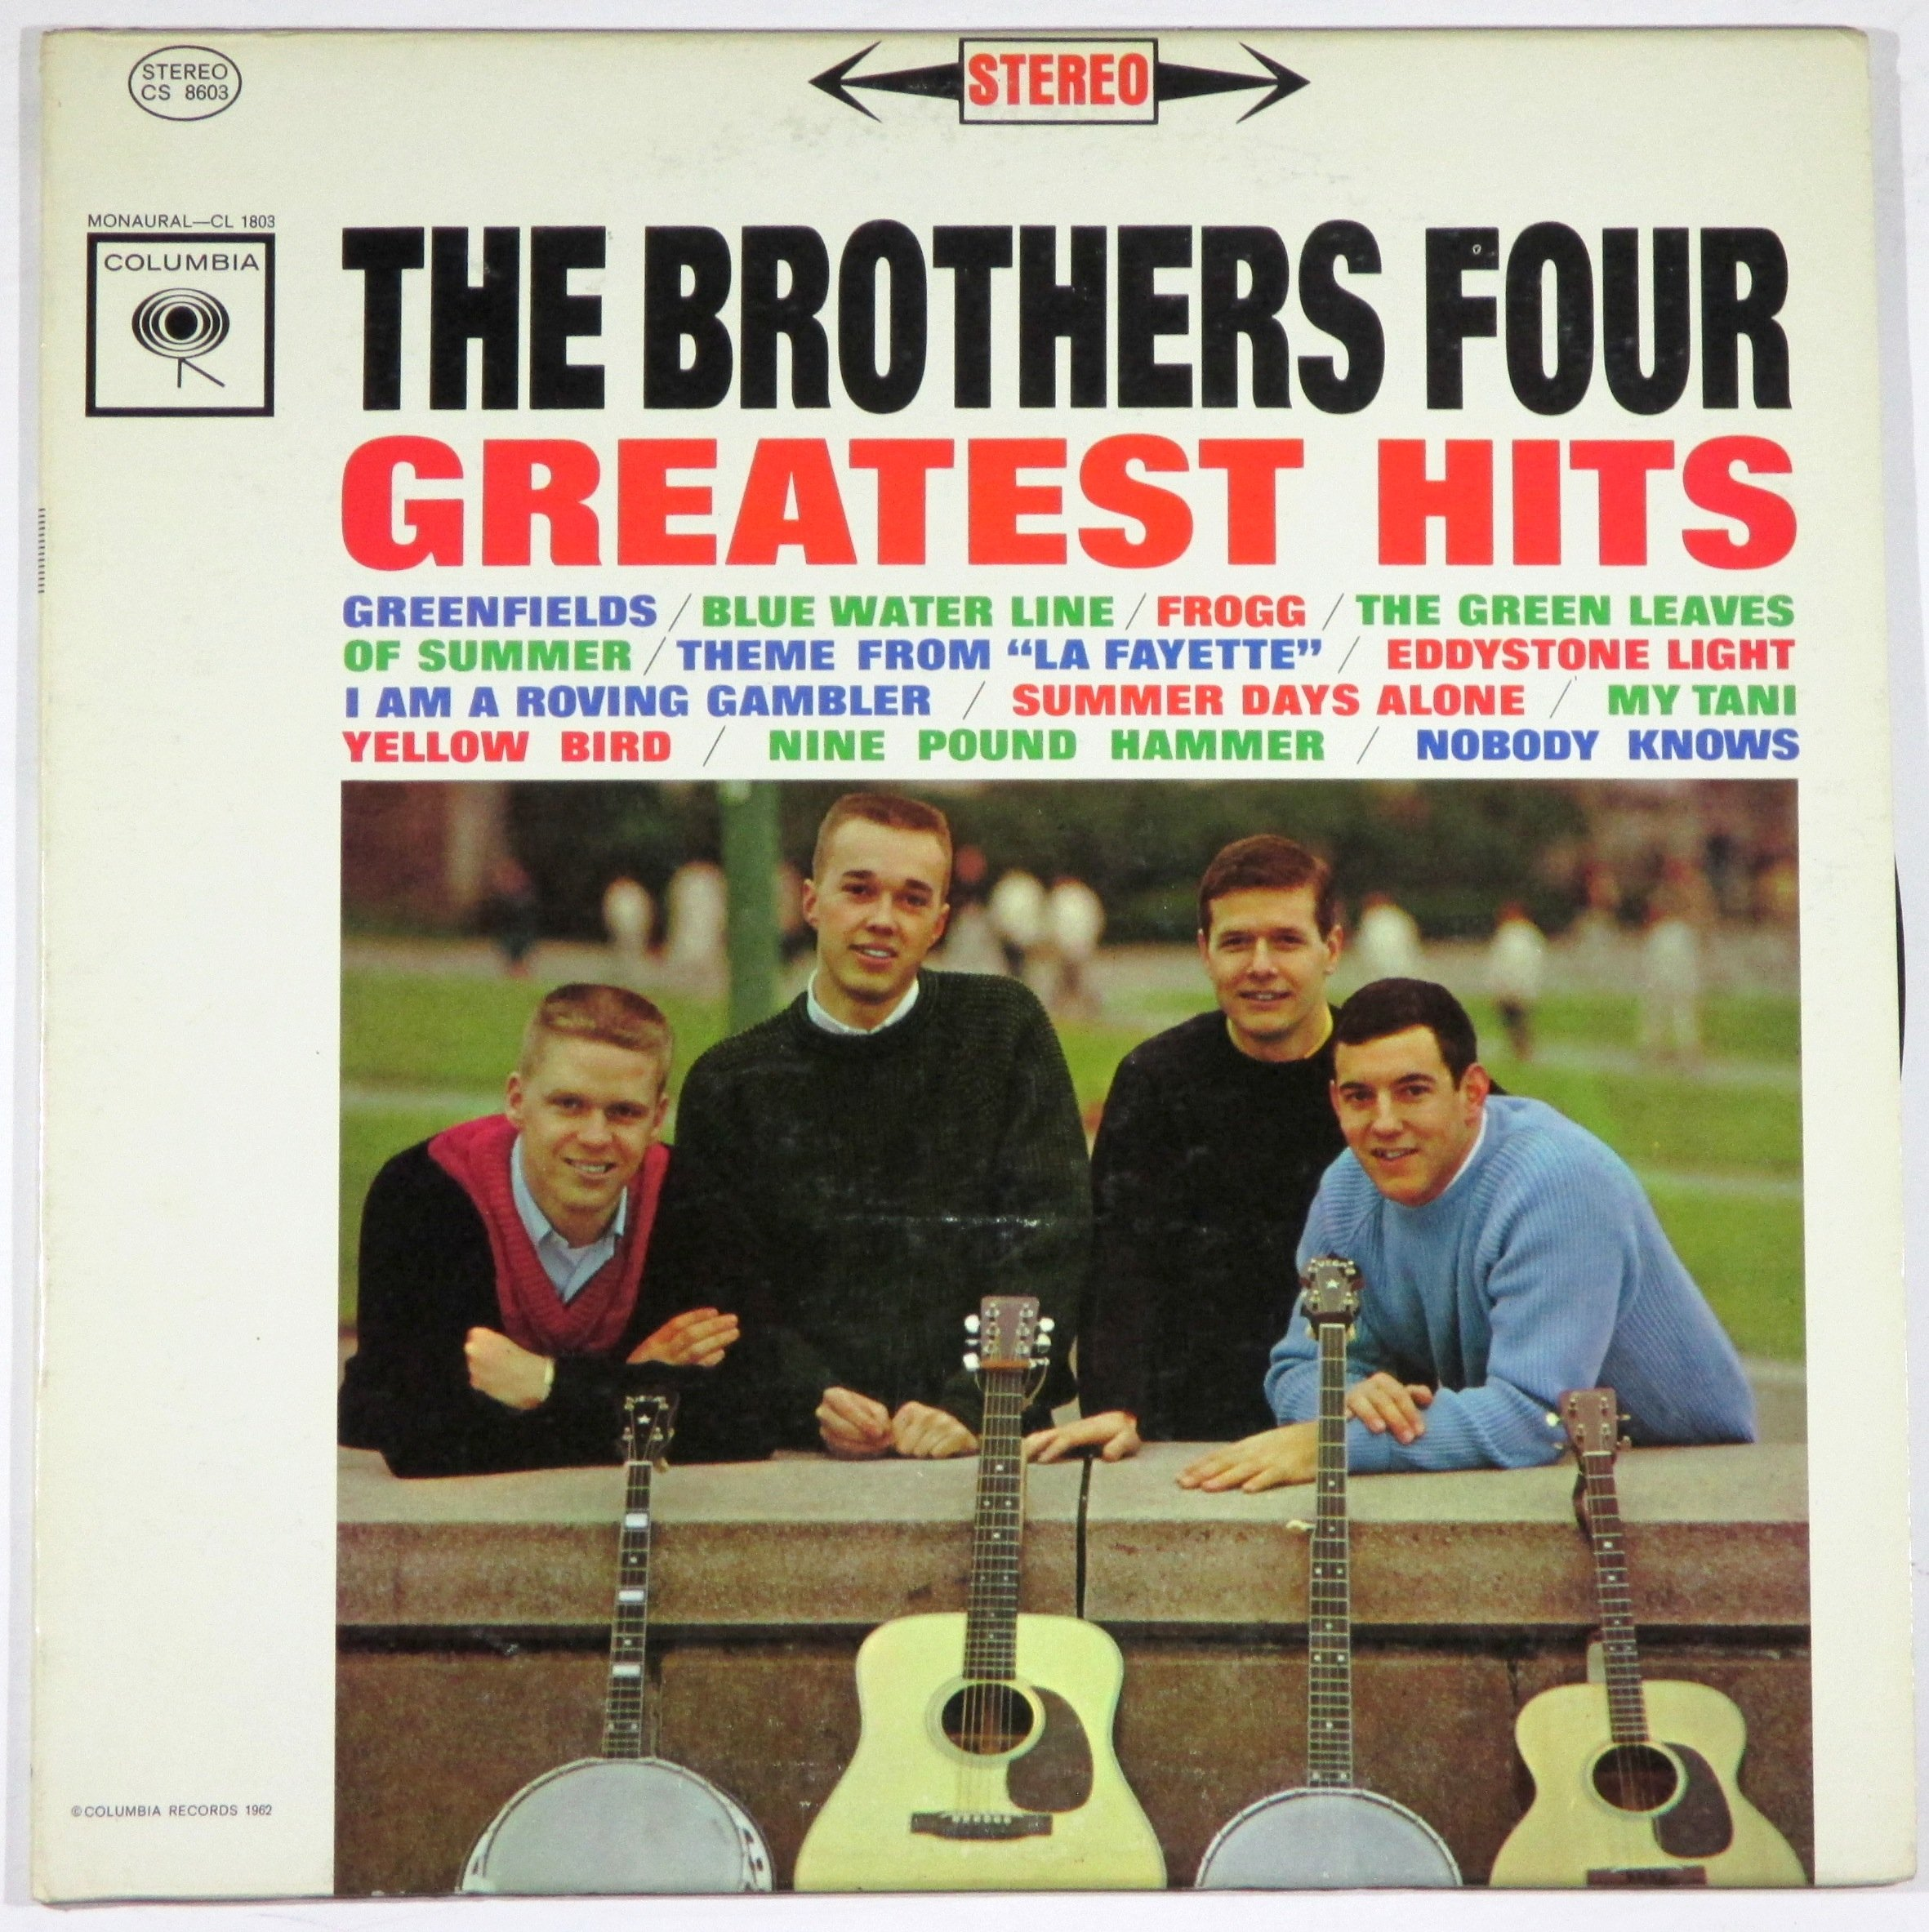 The Brothers Four: Greatest Hits